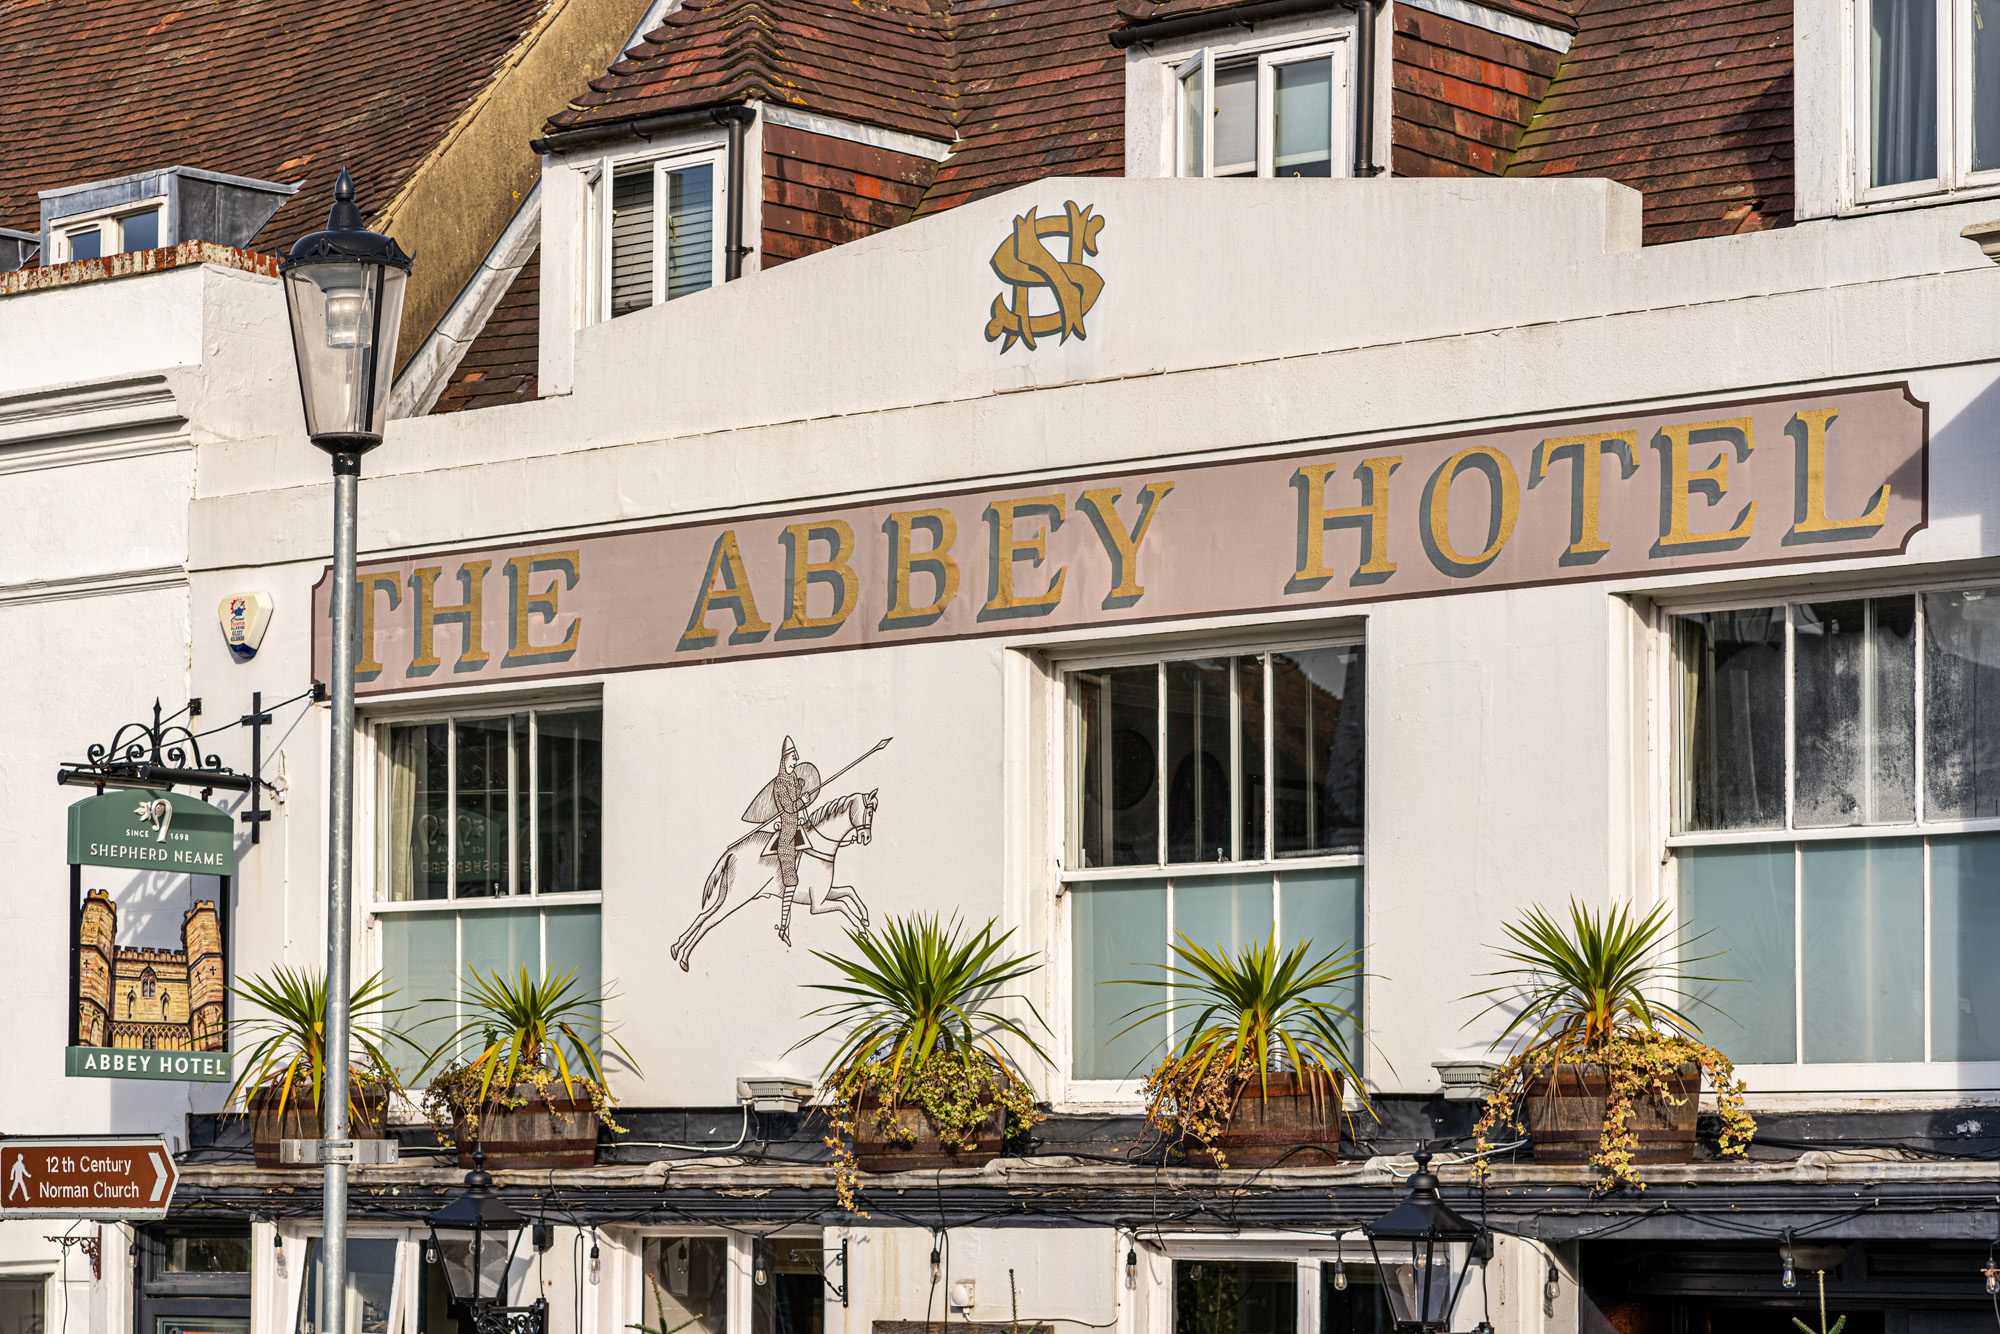 Abbey Hotel, Battle